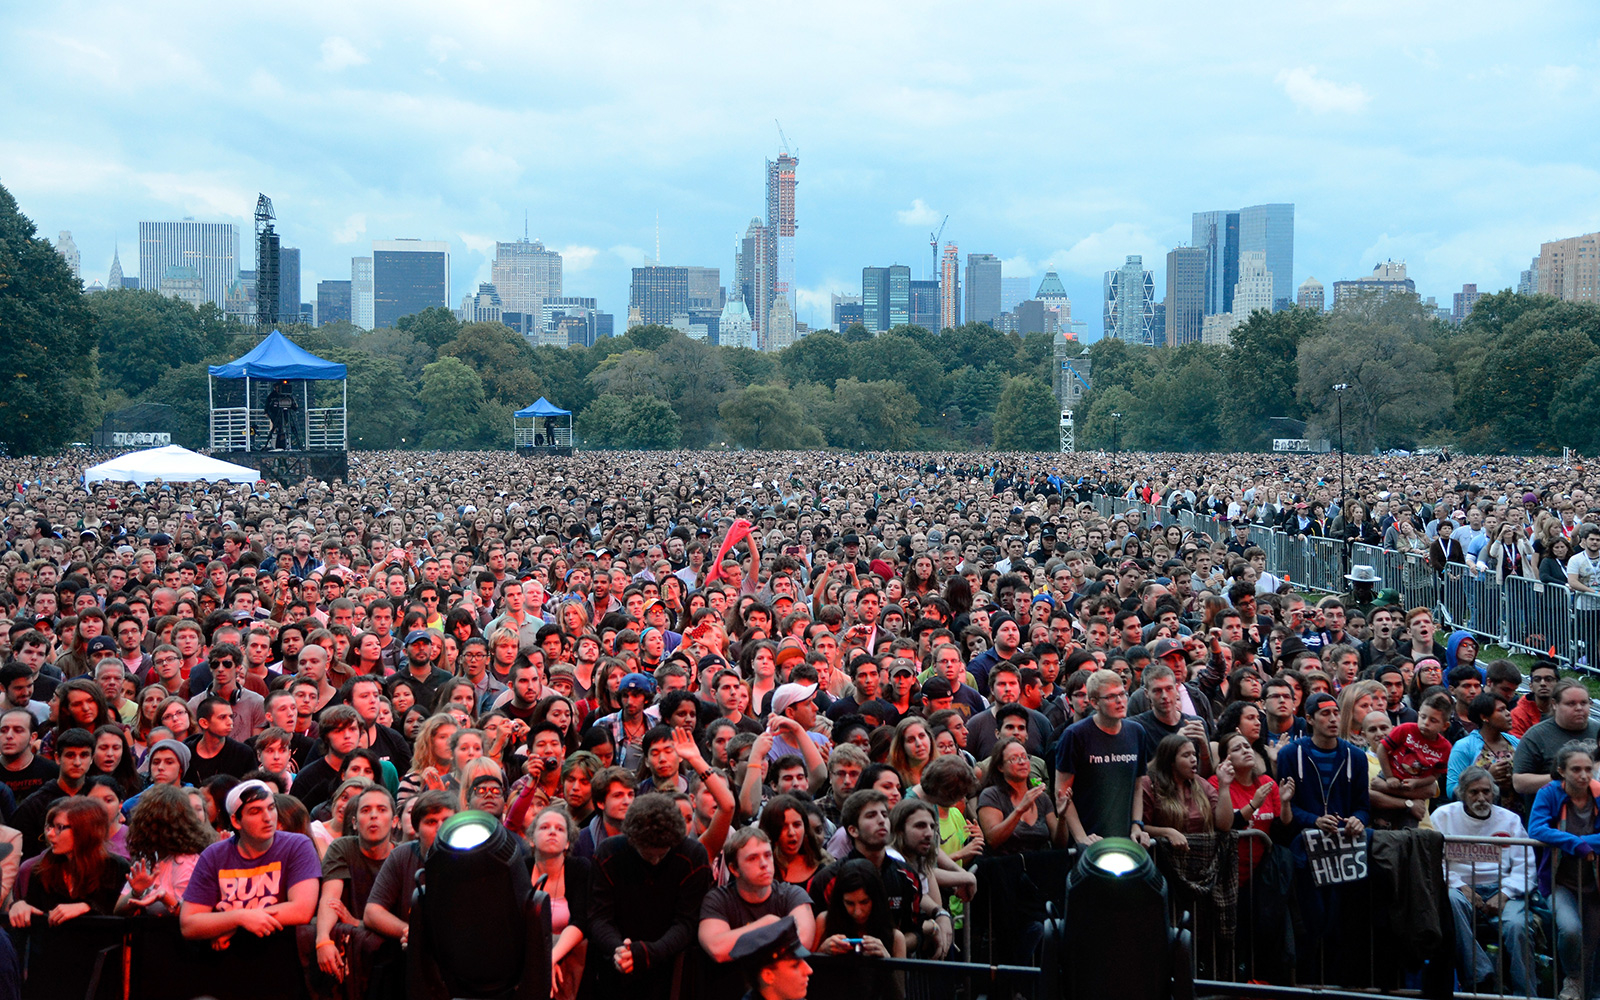 NEW YORK, NY - SEPTEMBER 29:  Audience at the The Global Citizen Festival in Central Park to end extreme poverty - Show at Central Park on September 29, 2012 in New York City.  (Photo by Kevin Mazur/WireImage)